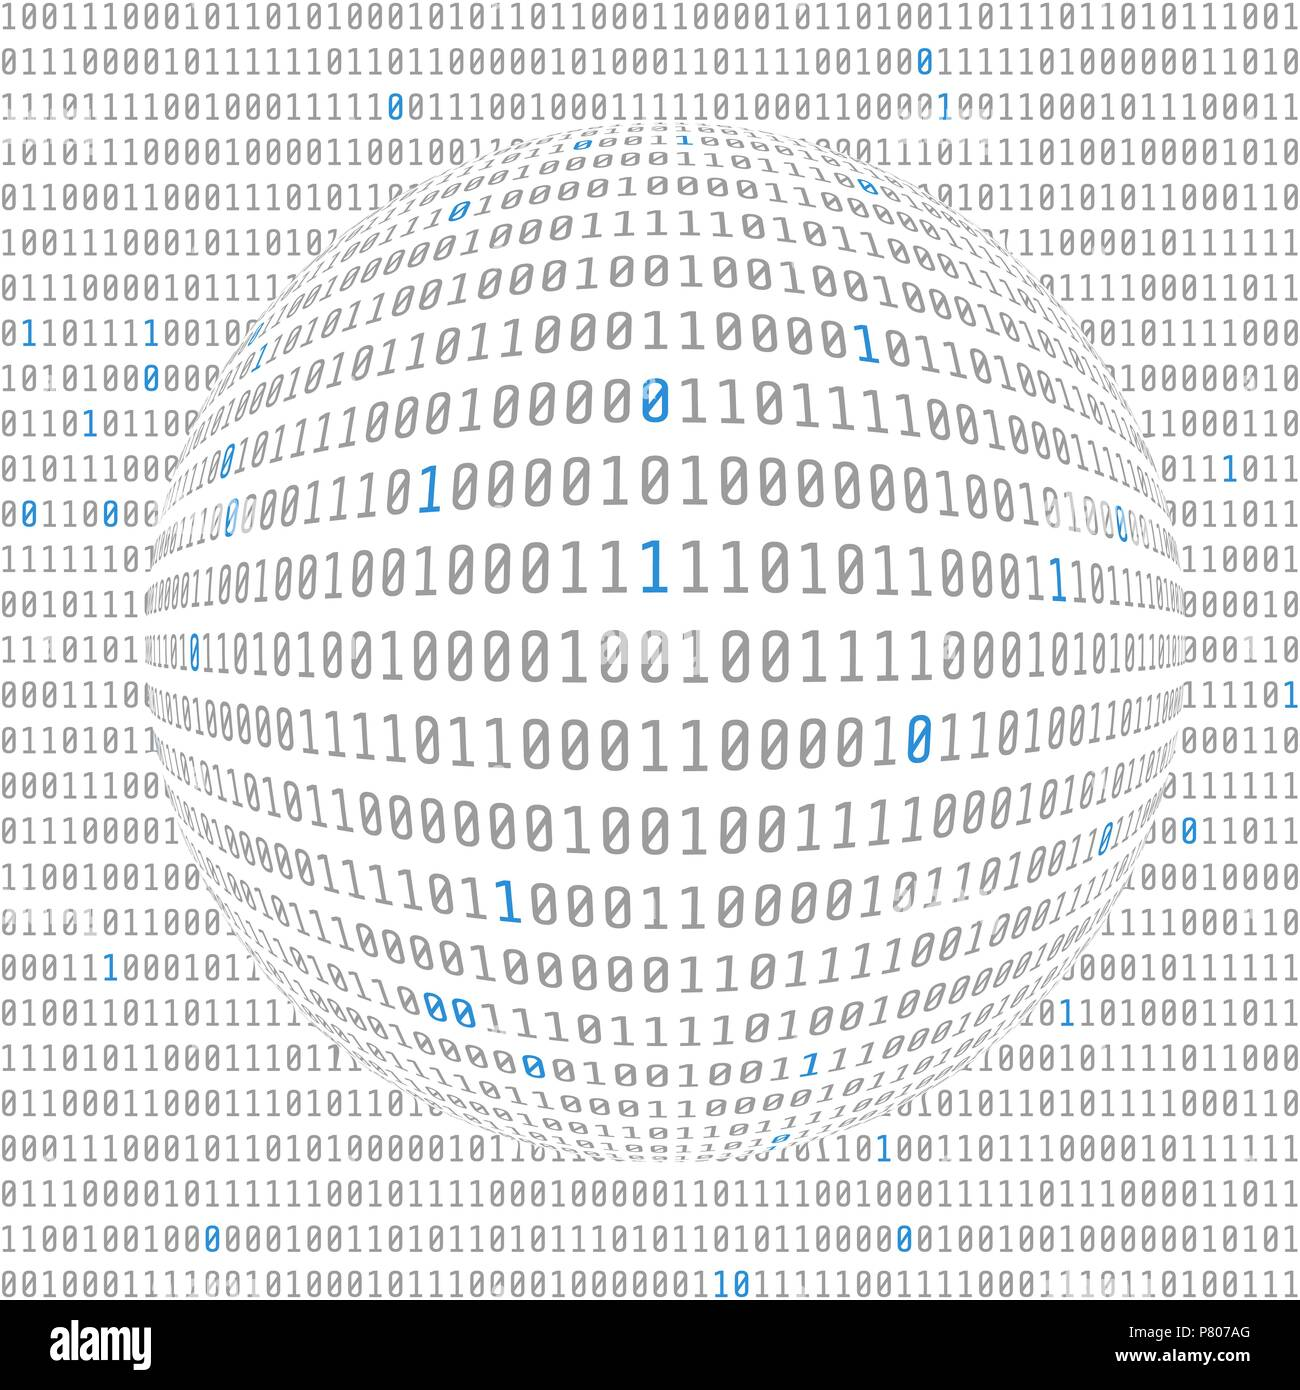 Binary data view. cybersecurity. binary code concave hemisphere with allocated key bits. vector - Stock Vector